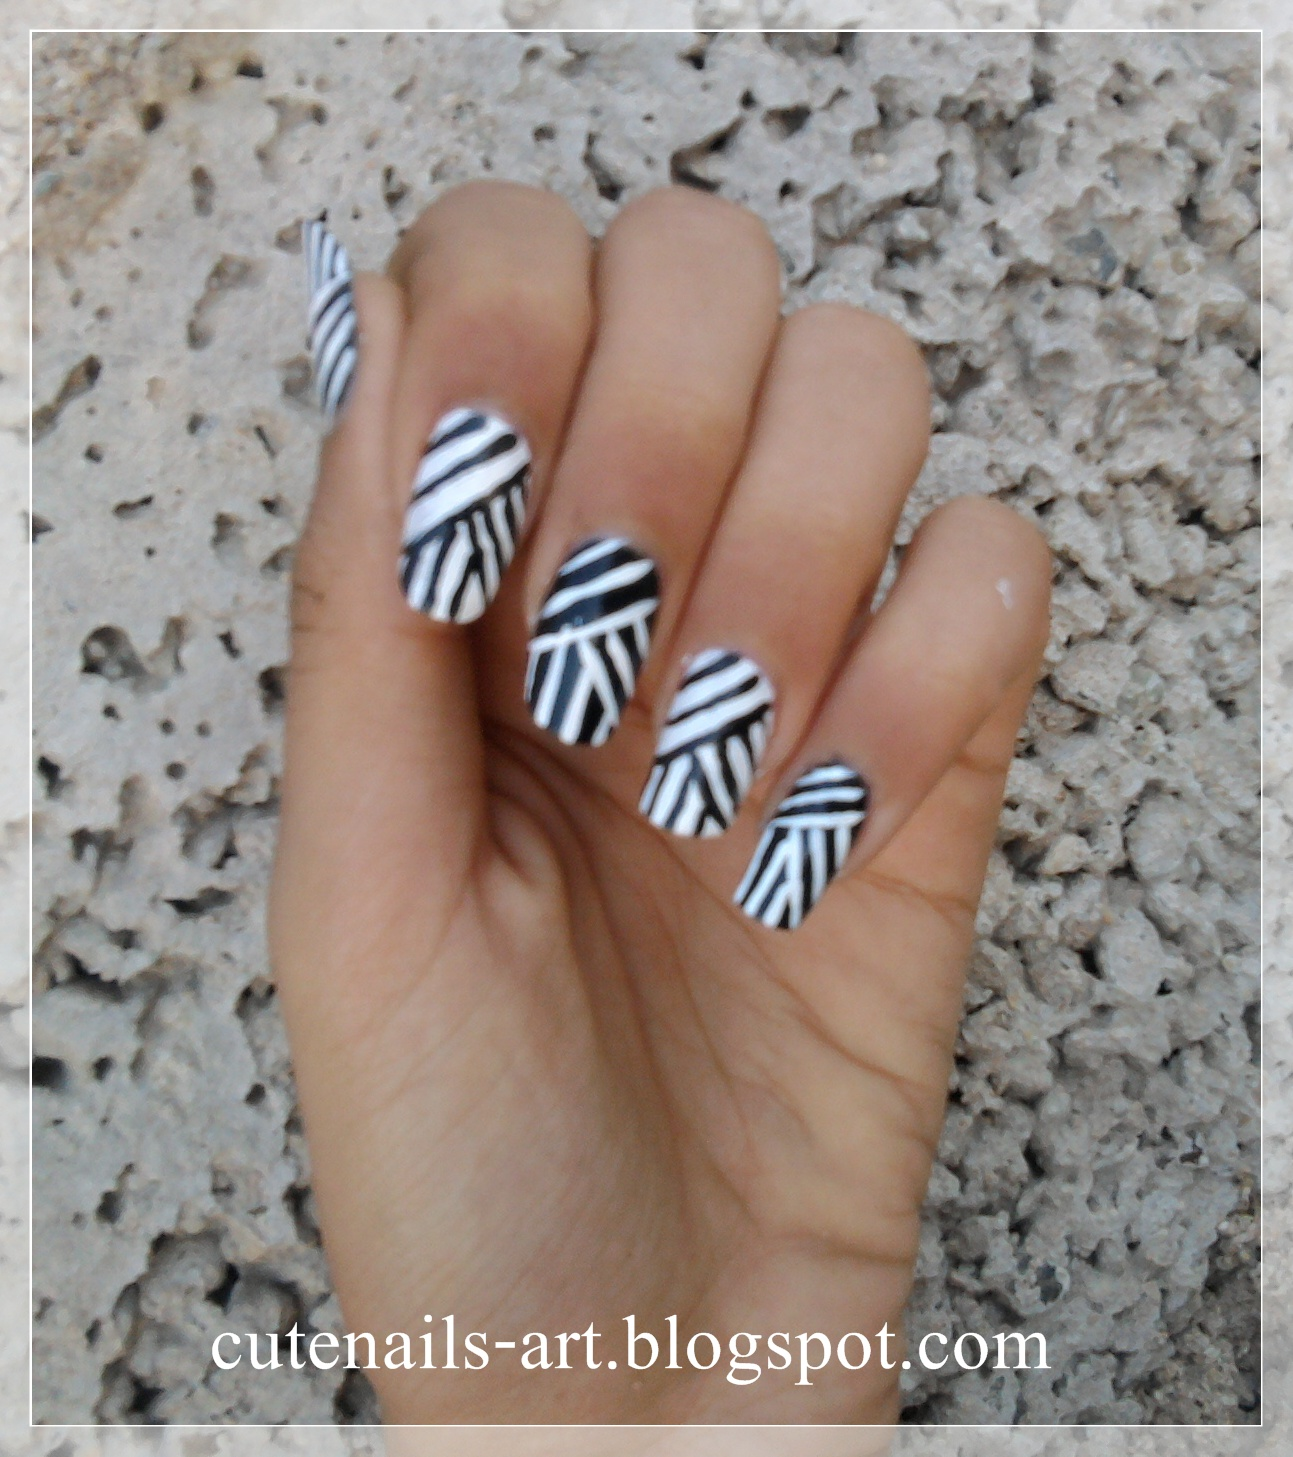 cutenails-art: weaving lines nail art design/black and white